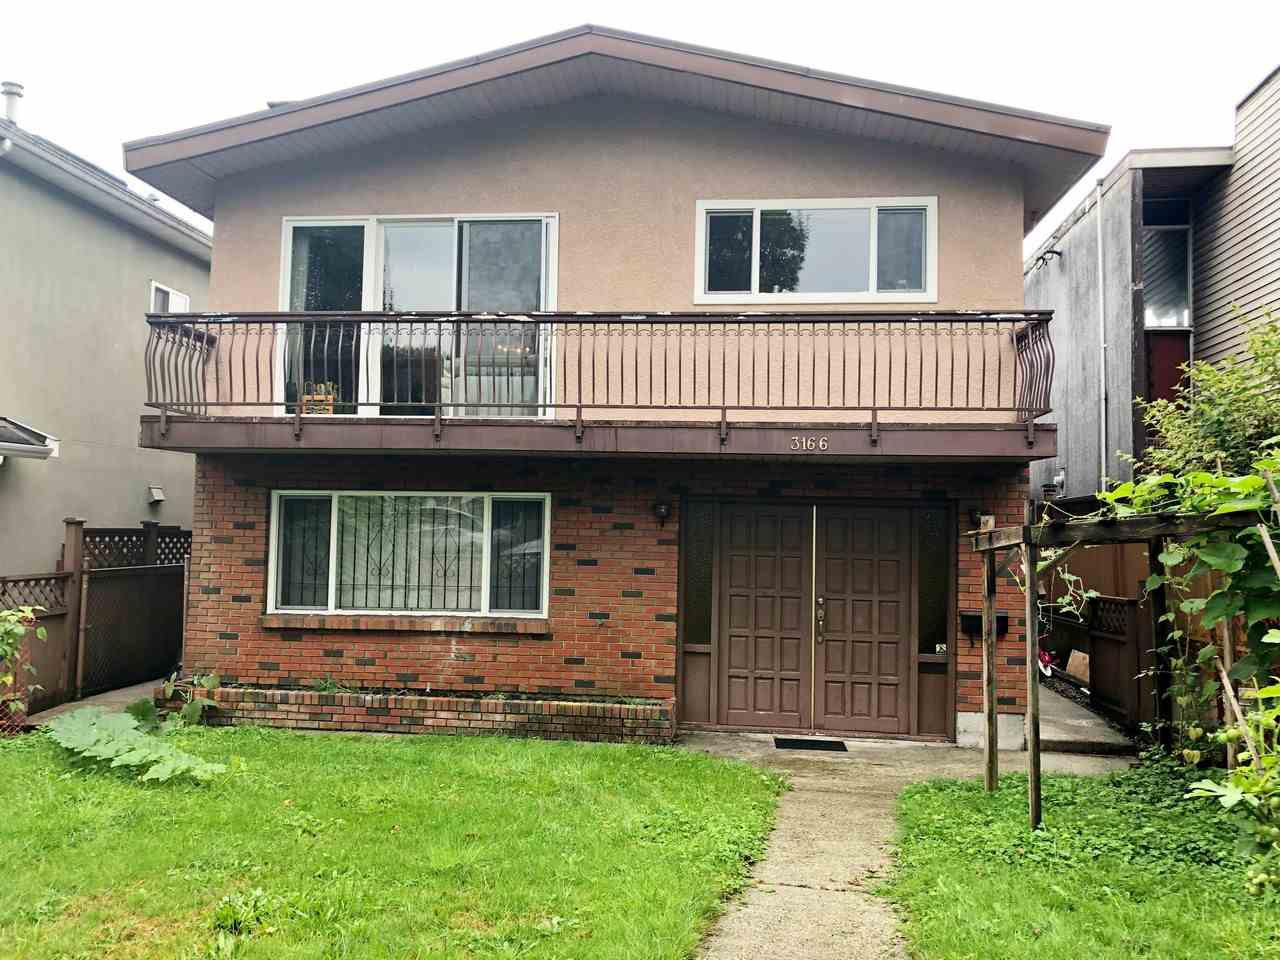 Main Photo: 3166 E 1ST Avenue in Vancouver: Renfrew VE House for sale (Vancouver East)  : MLS®# R2405003